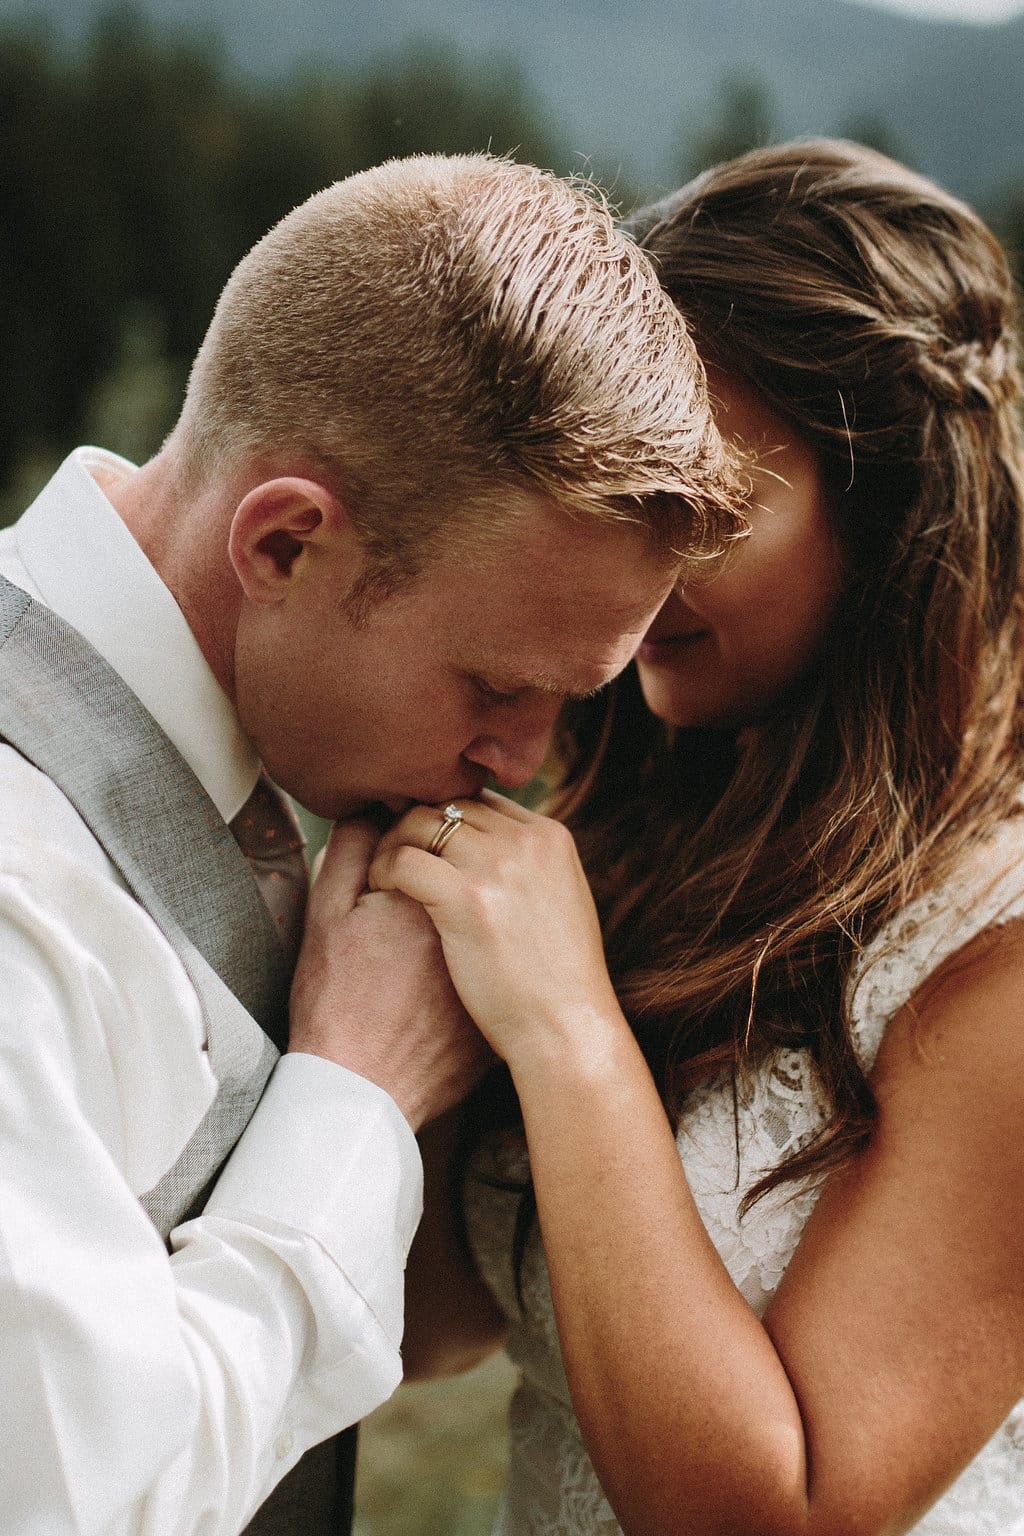 Travel-Themed Wedding Featuring Lace Wedding Dress Londyn - Maggie Bride wearing Londyn wedding dress by Maggie Sottero